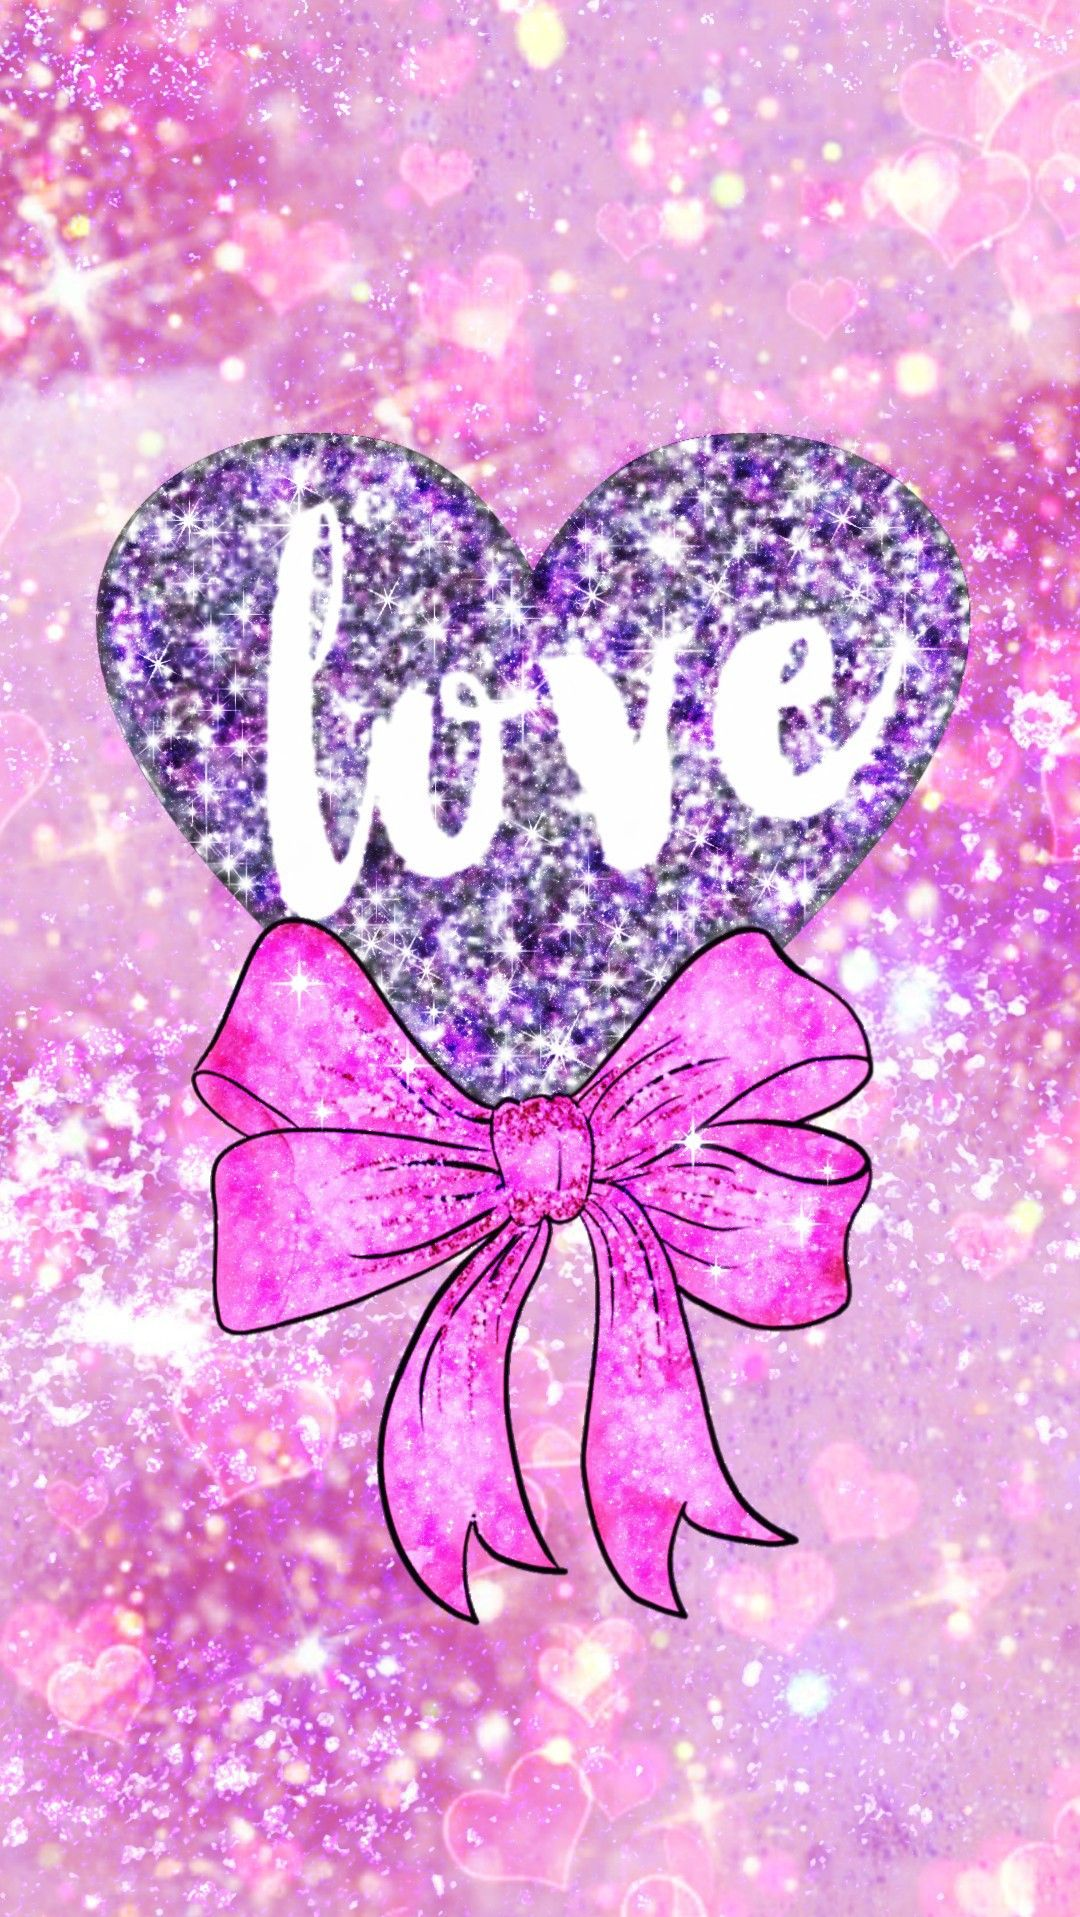 Glittery Valentine Heart Made By Me Love Valentinesday Bow Pink Girly Love Bemine Iloveyou Hearts Valentines Wallpaper Heart Wallpaper Love Wallpaper Glitter pink love wallpaper